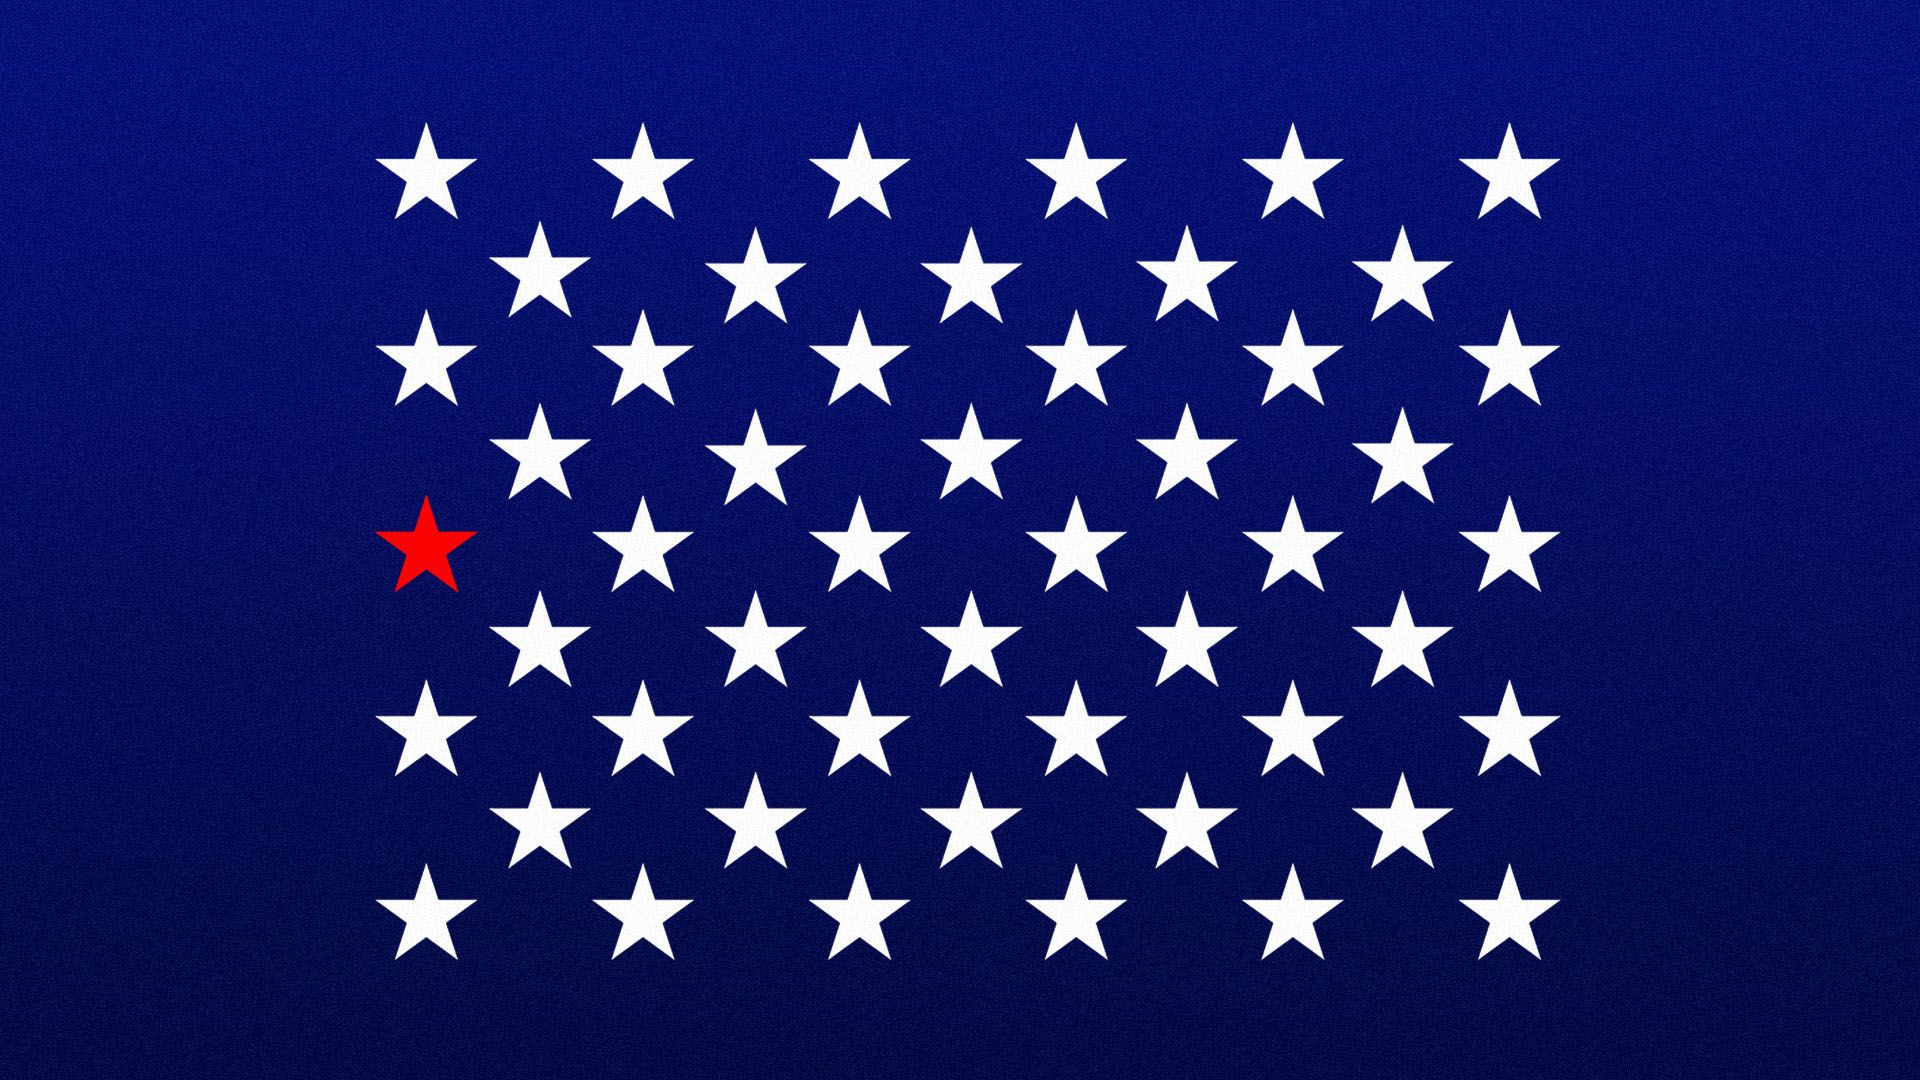 Illustration of one red star representing California amongst the field of 50 white stars on the United States flag